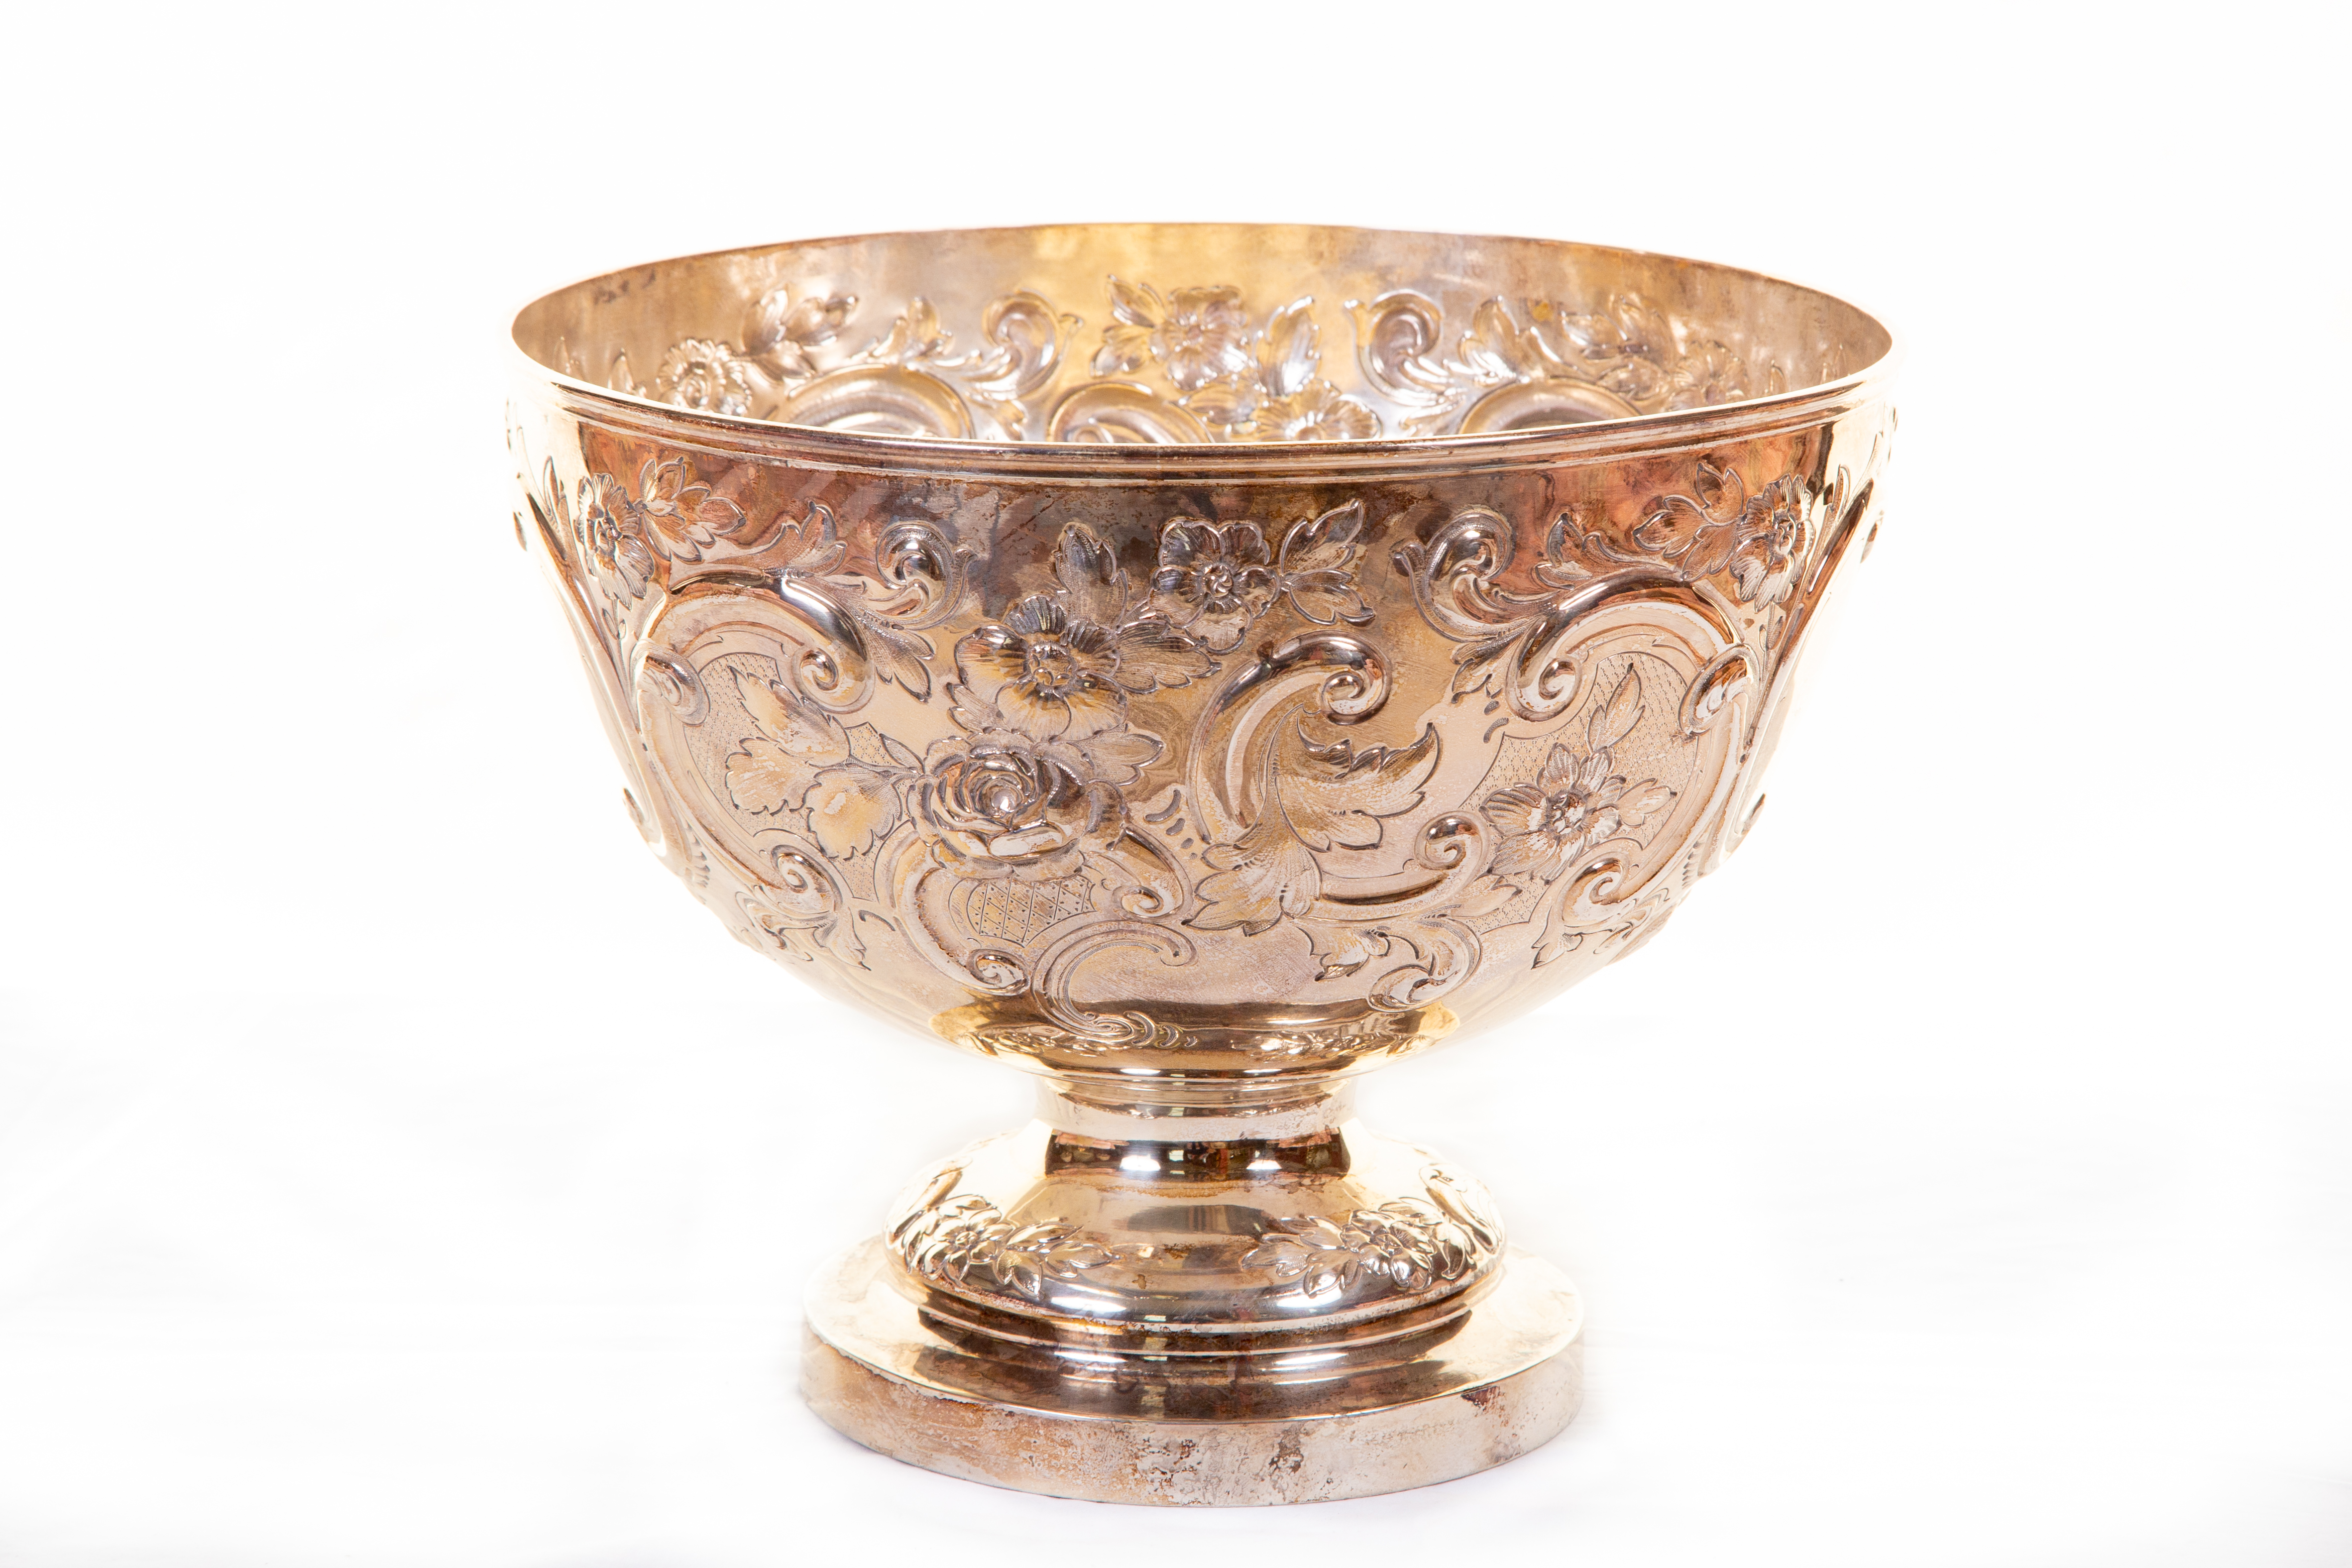 A large embossed Victorian silver Punch Bowl, London 1887, by Messrs Barnard, chased with scrolls